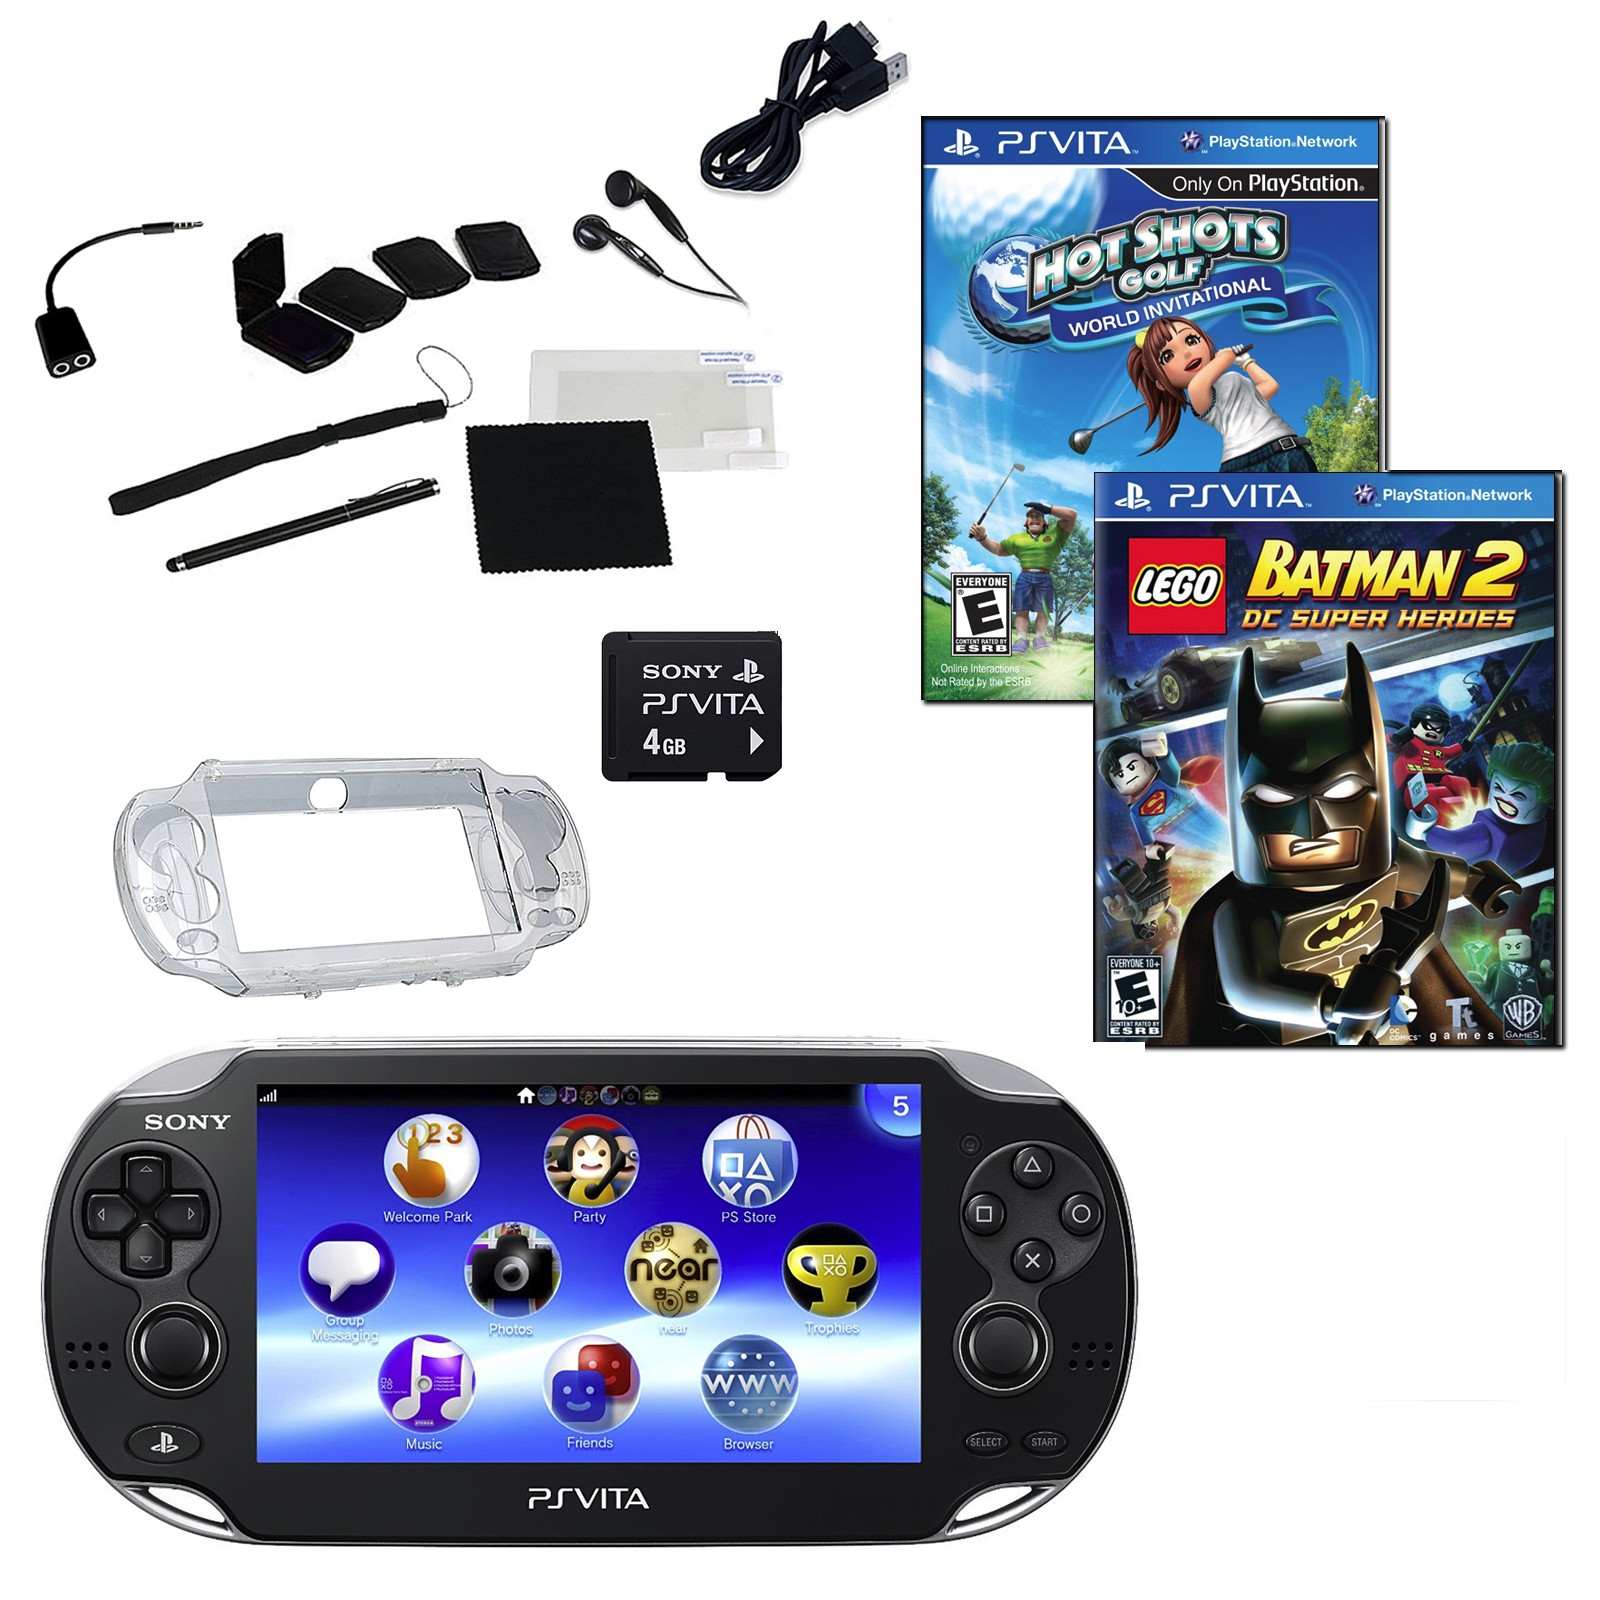 PlayStation Vita Wi-Fi Bundle with 2 Games, Memory Card, and Accessories